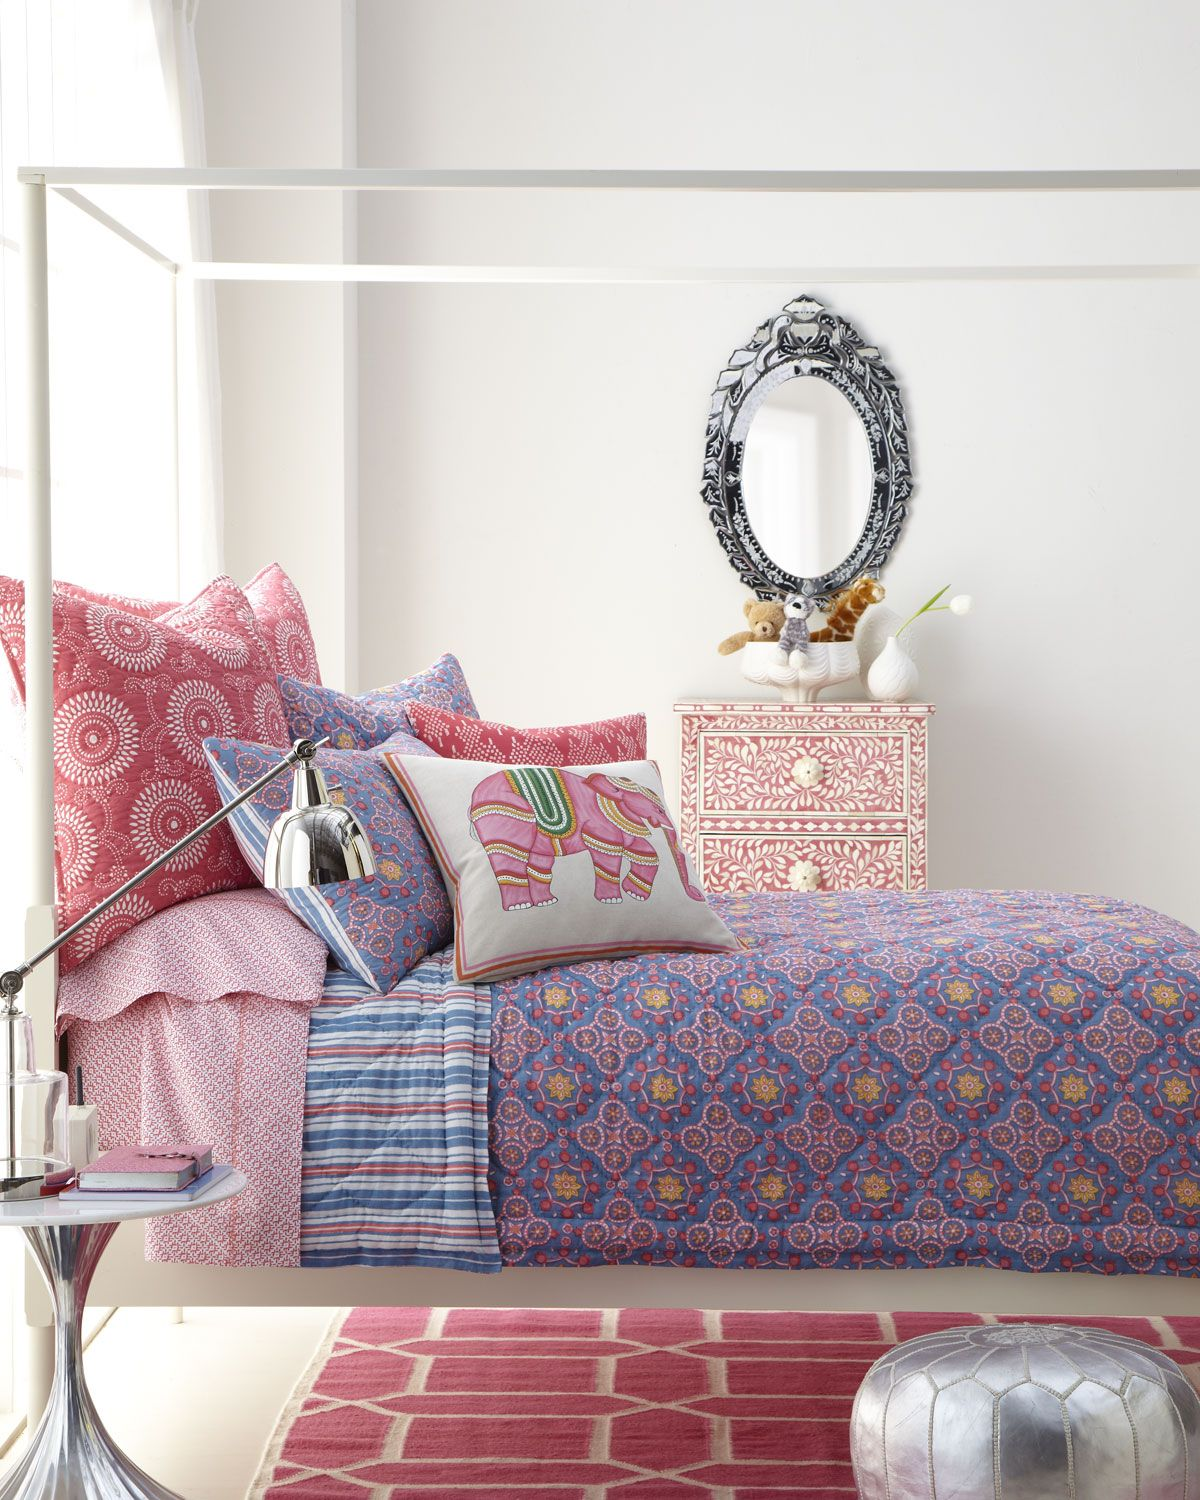 Neiman Marcus Pink Home Decor Ebth: Pin By John Robshaw Textiles On Interiors In 2019